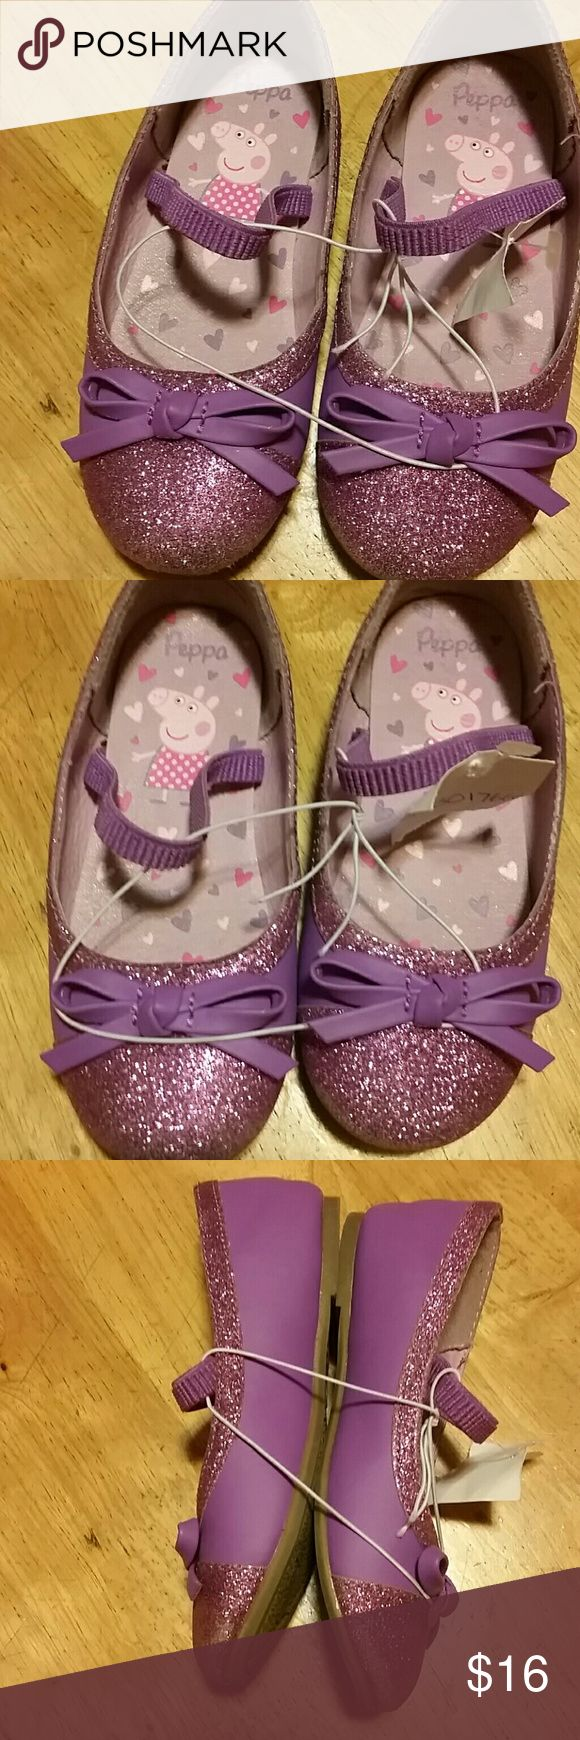 Peppa pig! !! Cute ballet flats very glittery with elastic band to hold in place never worn excellent condition no rips or stains. Peppa Pig Shoes Dress Shoes